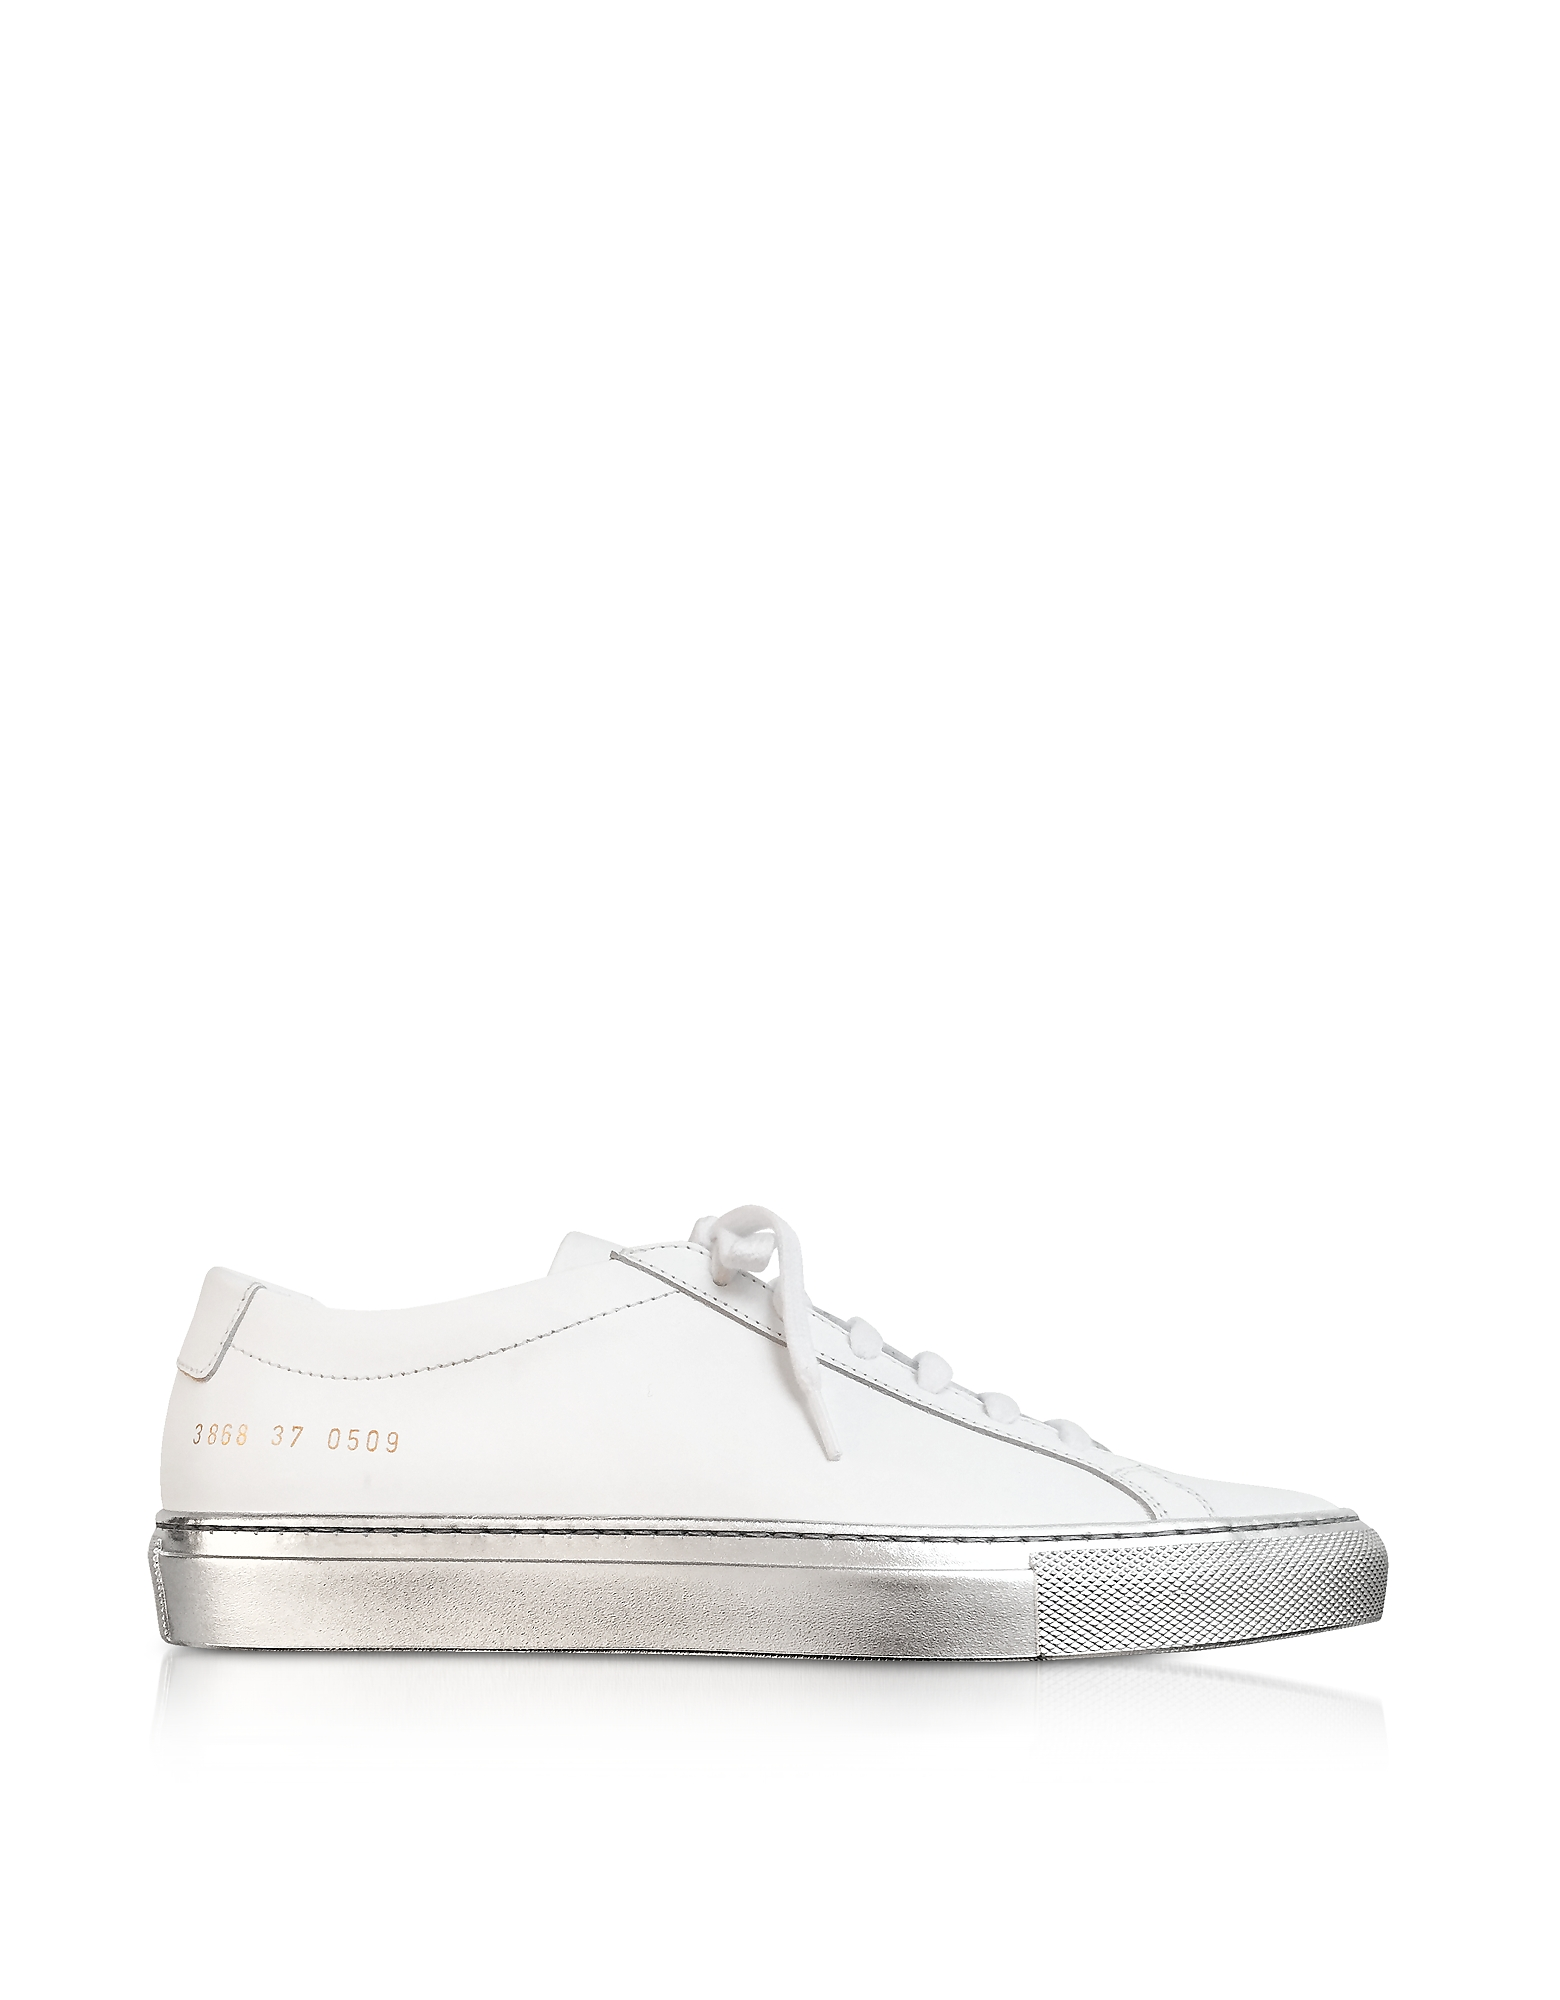 Achilles Sneakers Low Top da Donna in Pelle Bianco/Silver